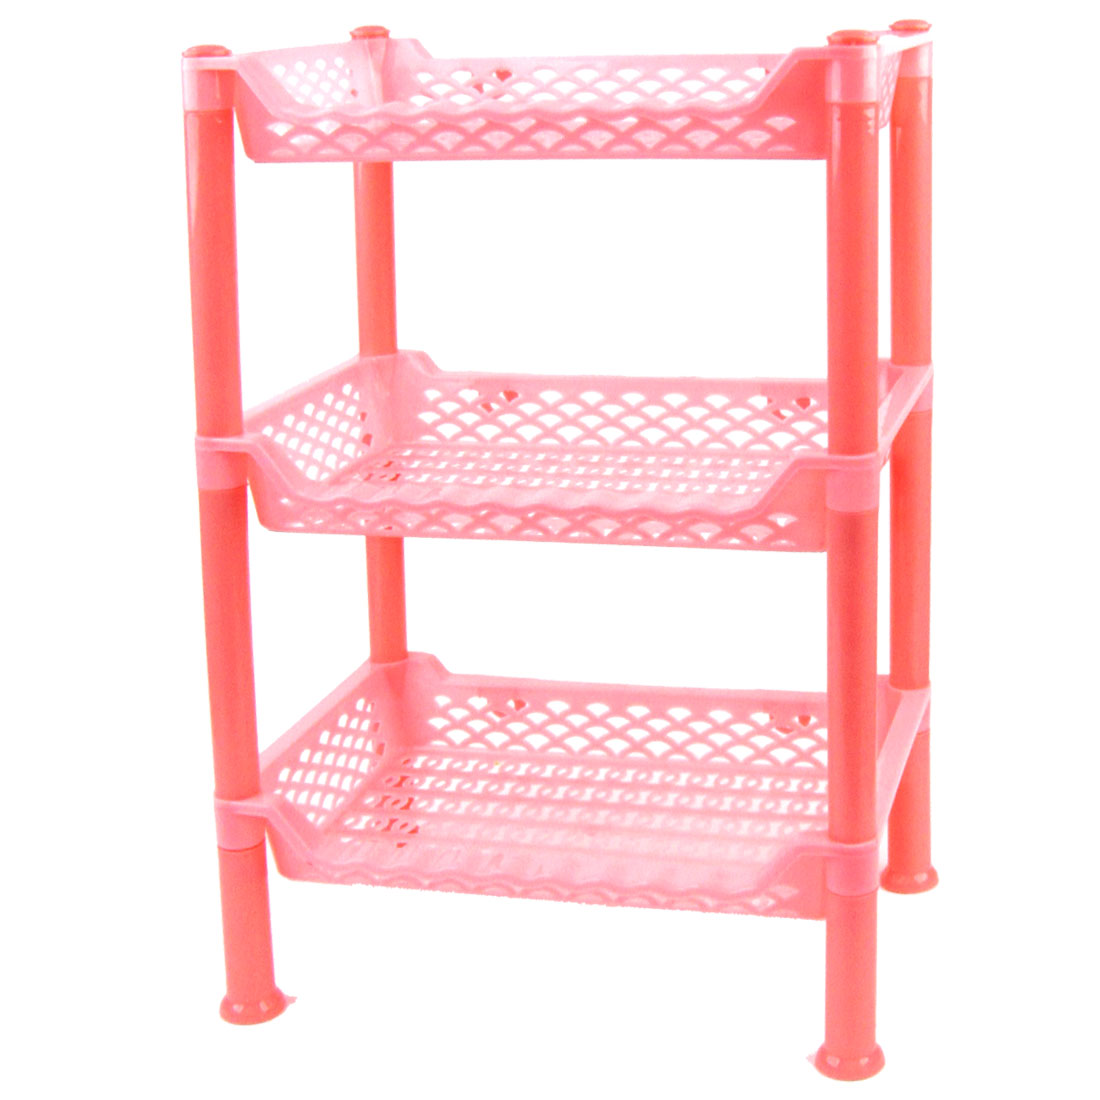 3 Layers Pink Plastic Detachable Shoes Organizers Racks Holder